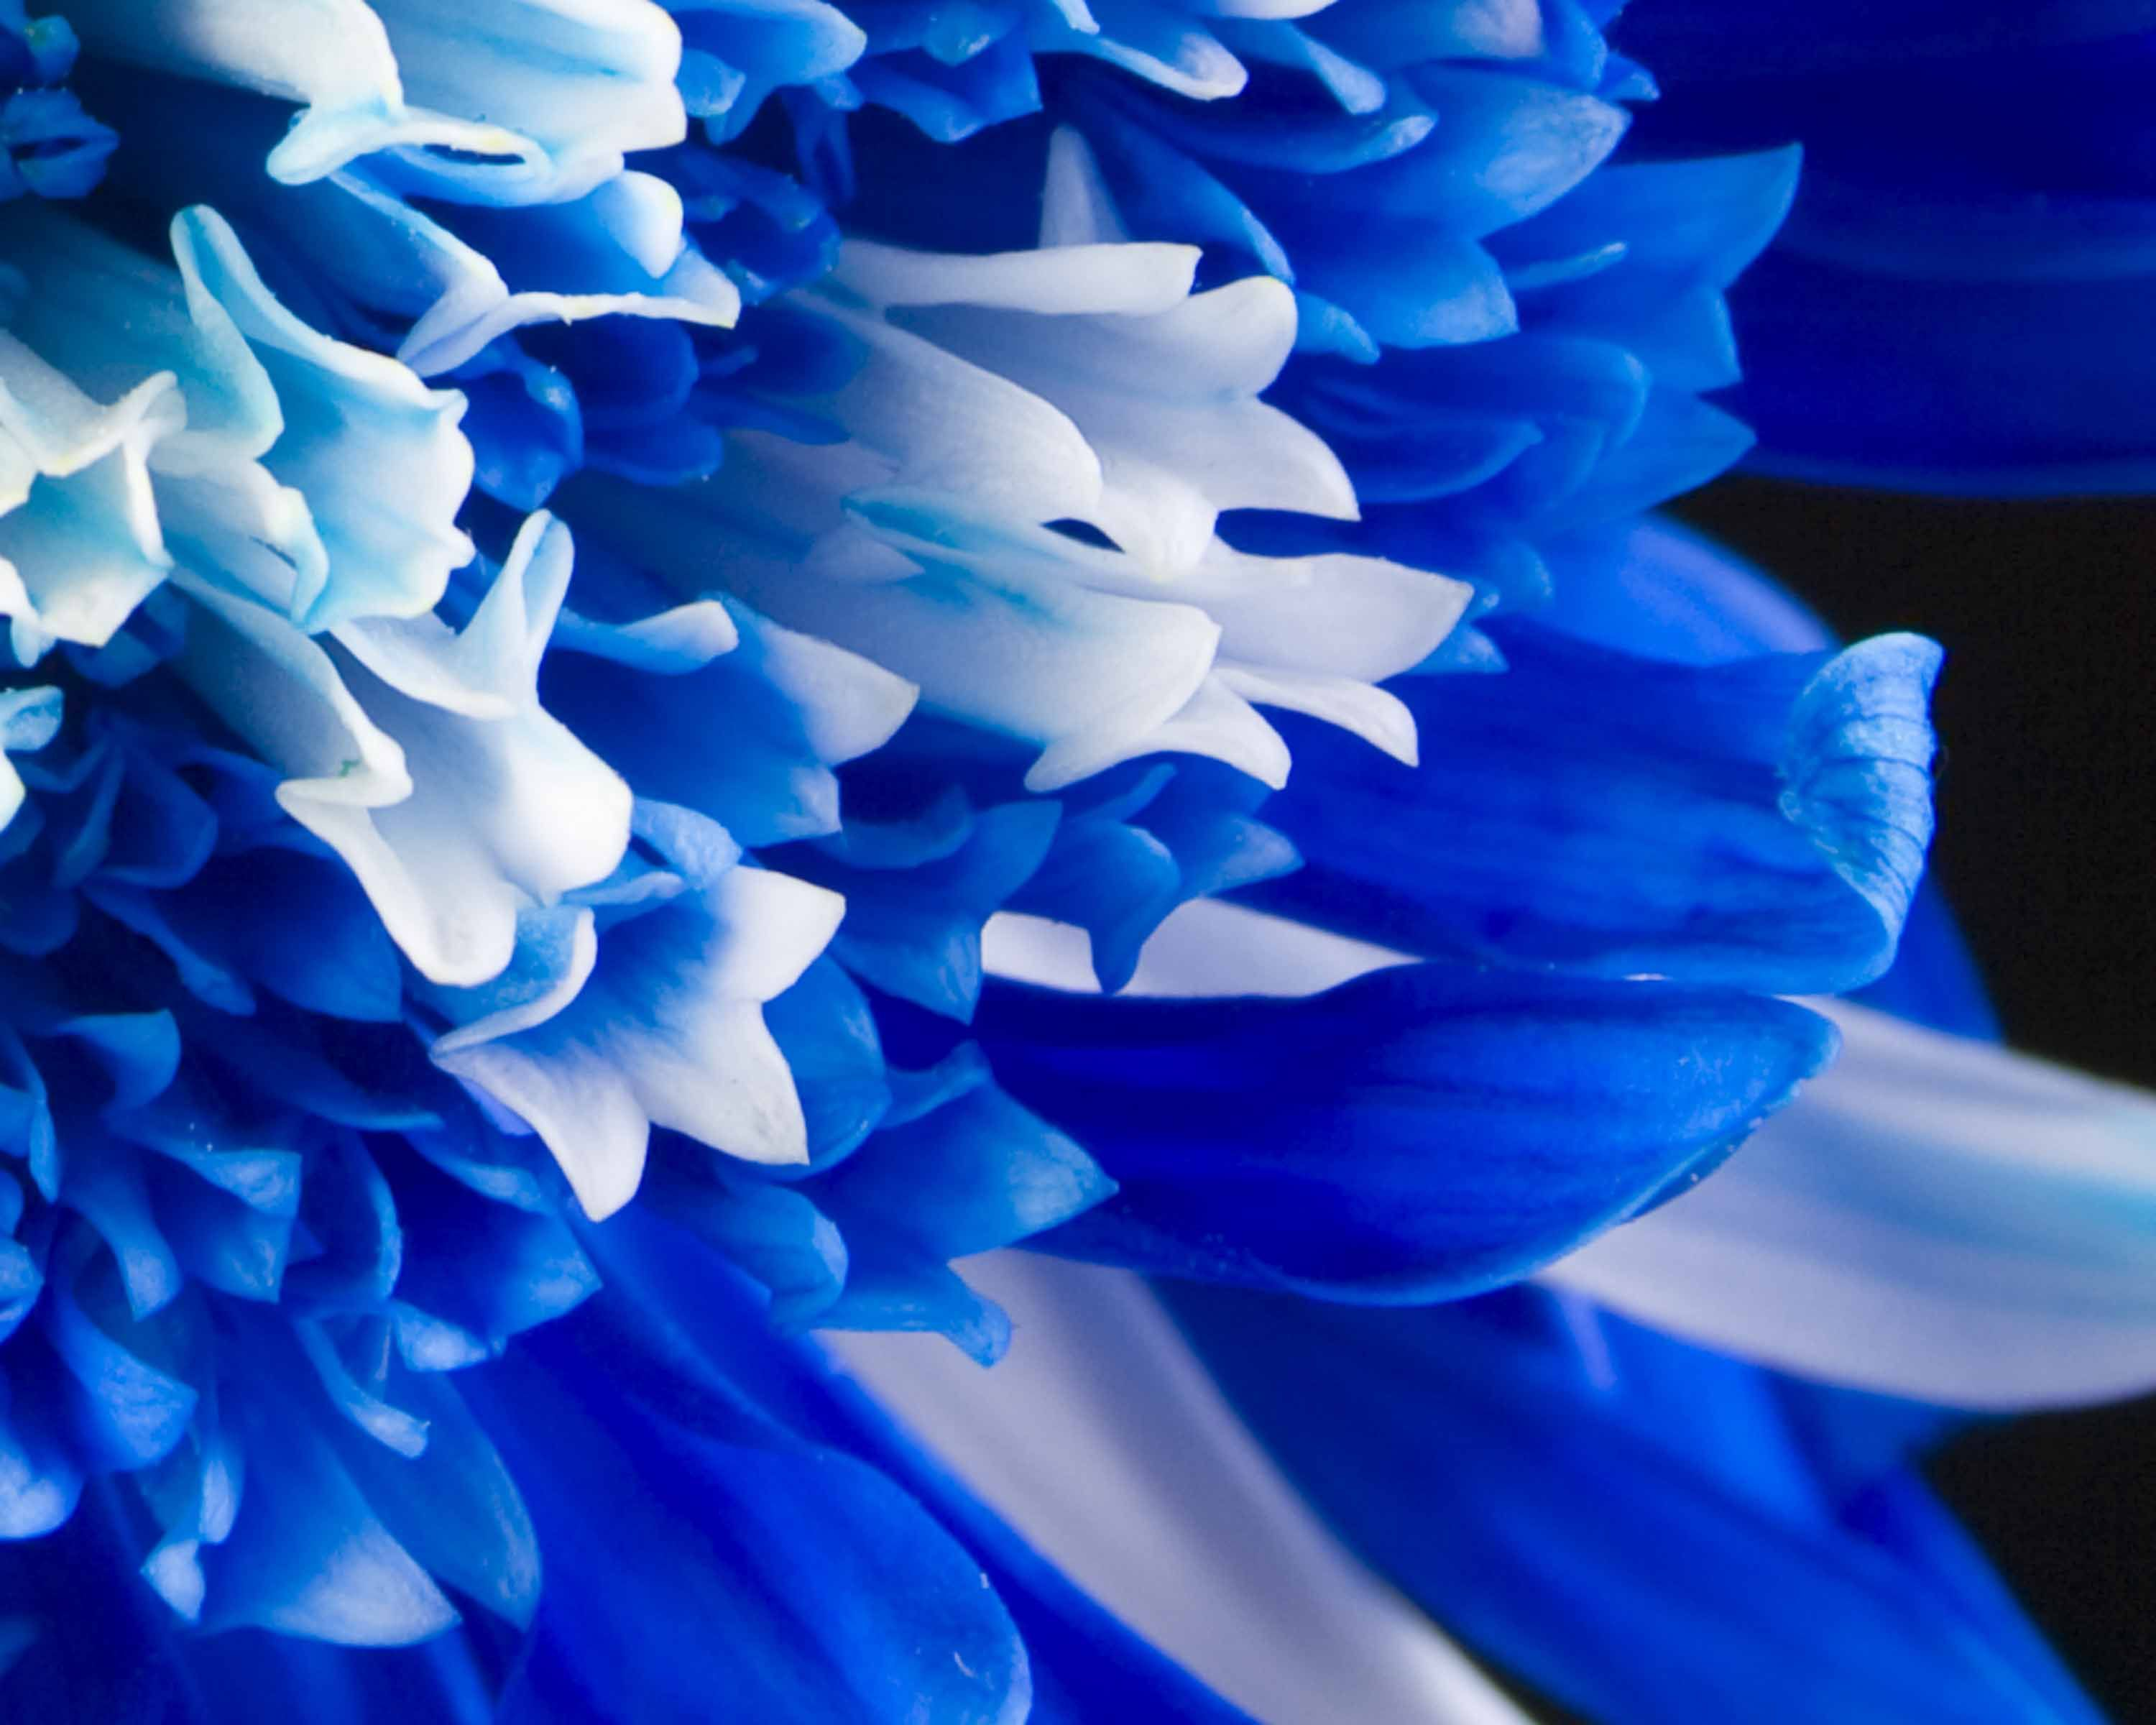 Royal Blue Flowers HD Wallpapers - Top